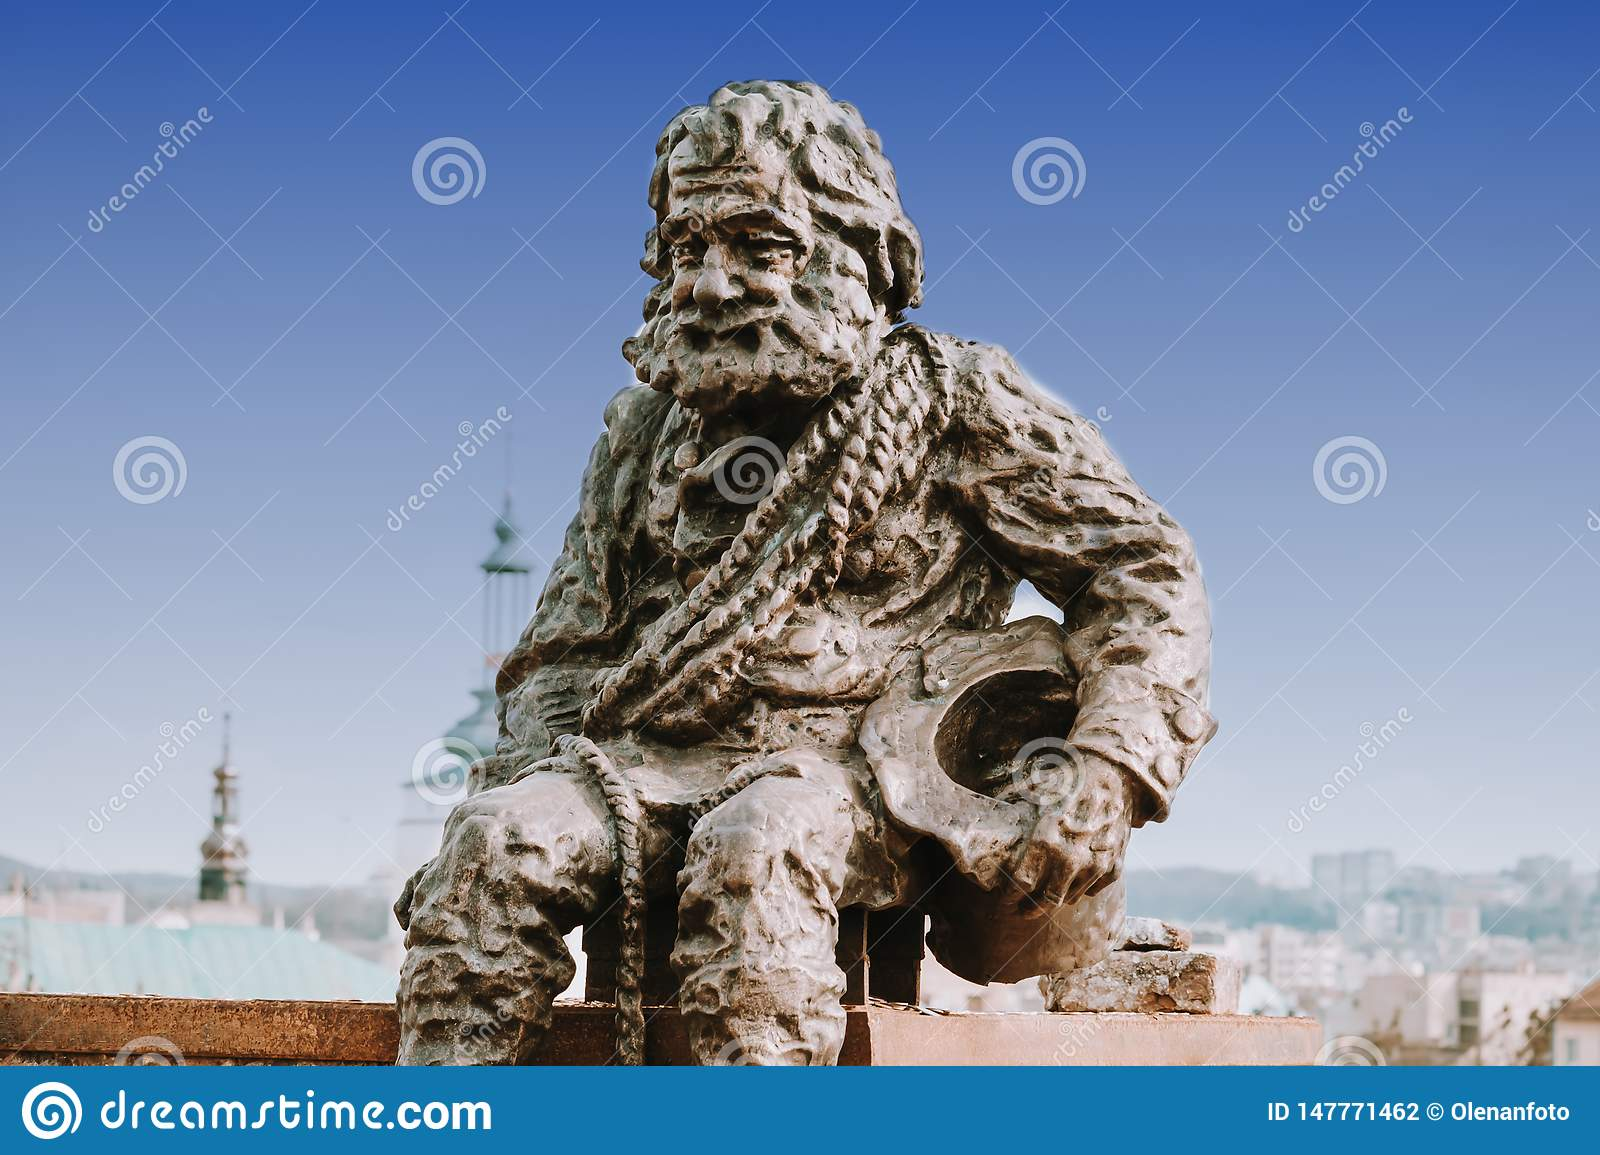 Sculpture a chimney sweep on the roof of the House of Legends in Lviv, Ukraine. Lvov is the most attractive city for tourists in